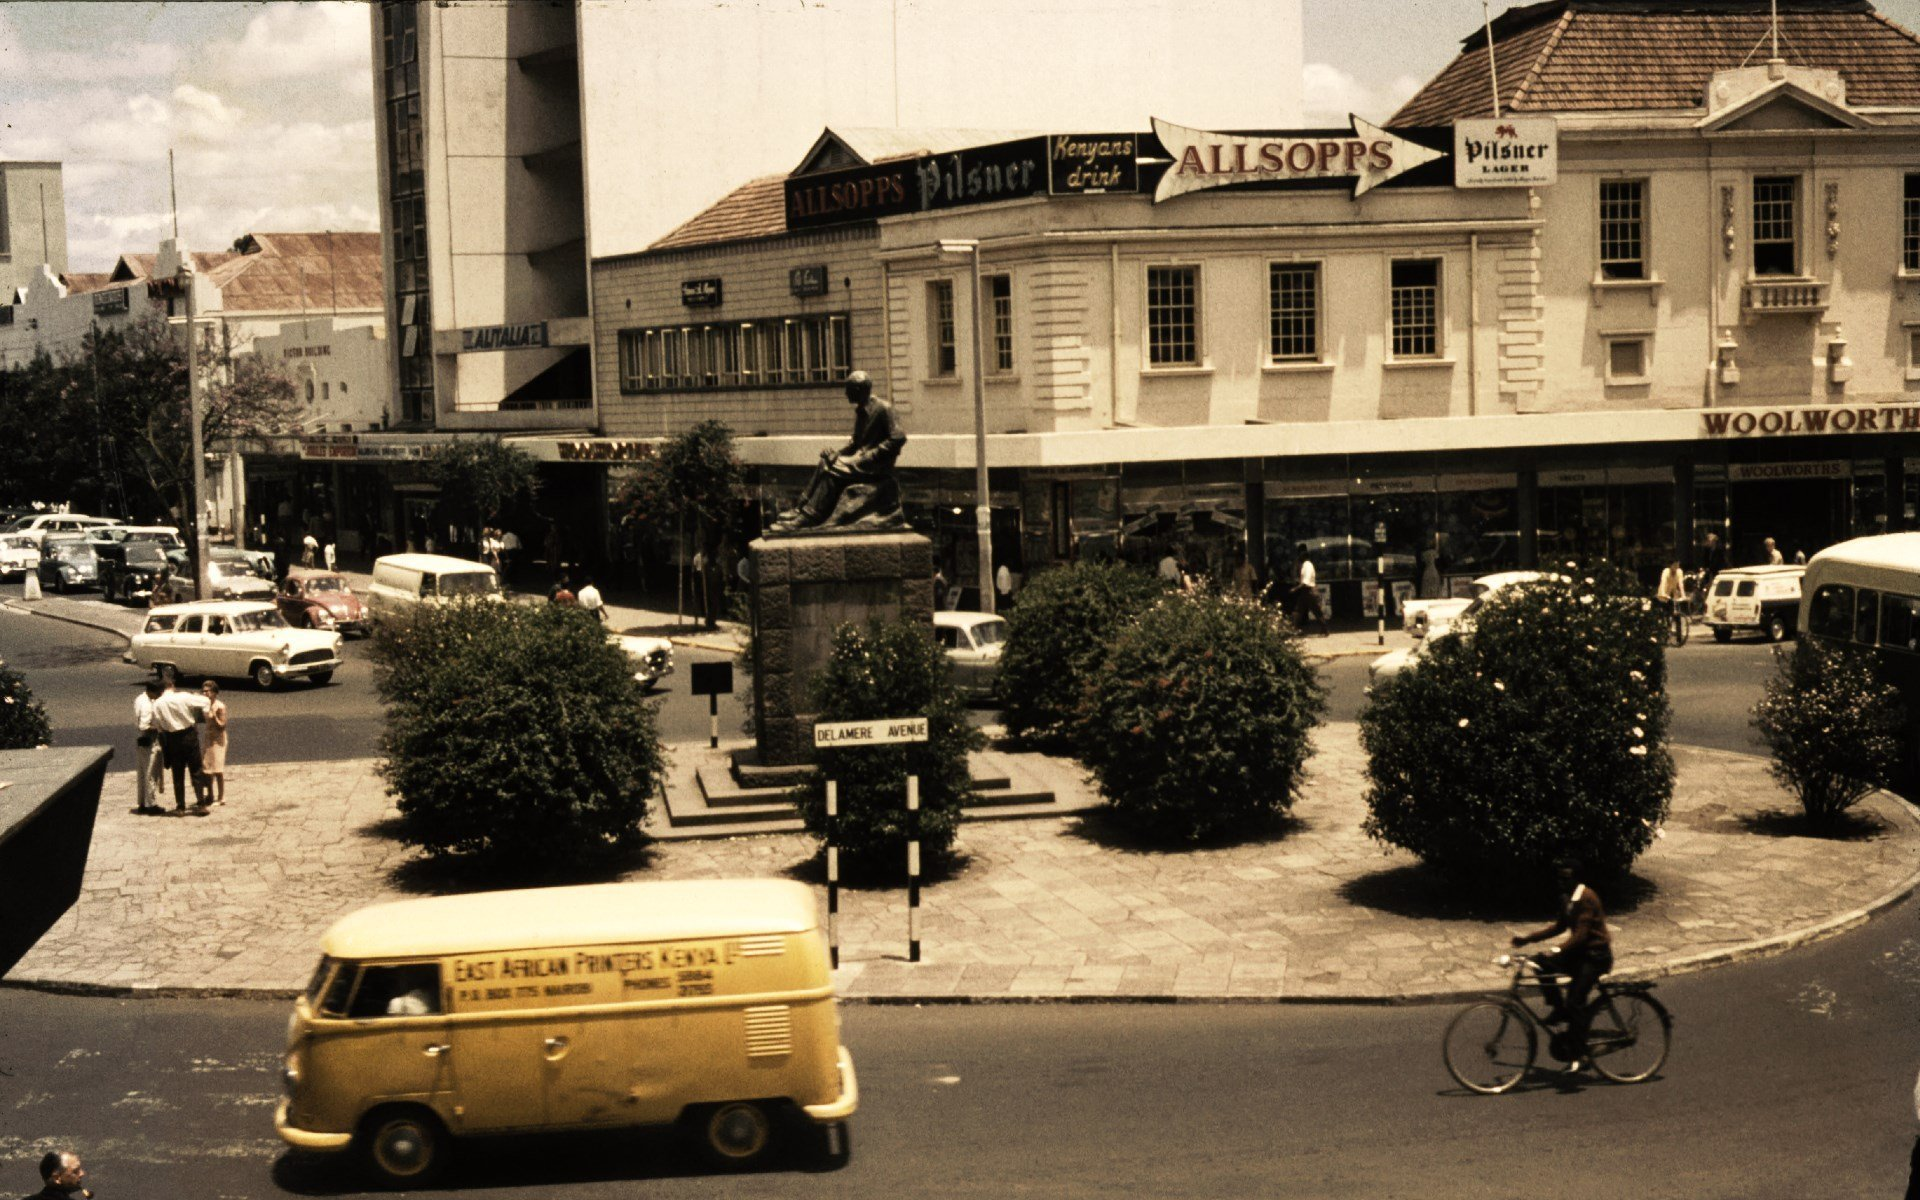 Lord Delamere's statue used to sit on the junction of Kimathi Street and Kenyatta Avenue. It was later removed from the city. A road bearing Delamere's name was also renamed. Photo courtesy of Howard Lee